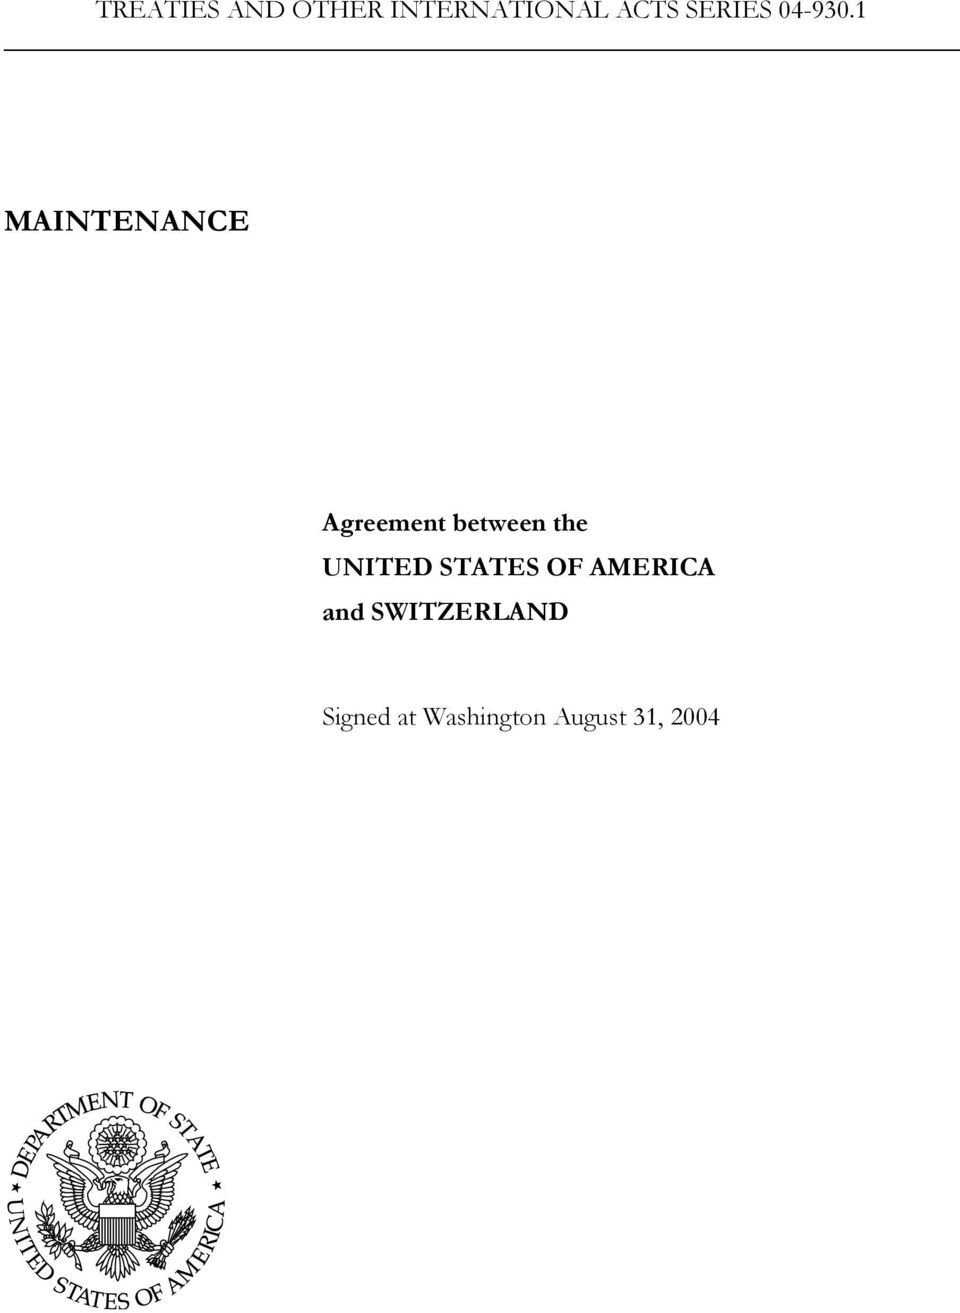 1 MAINTENANCE Agreement between the